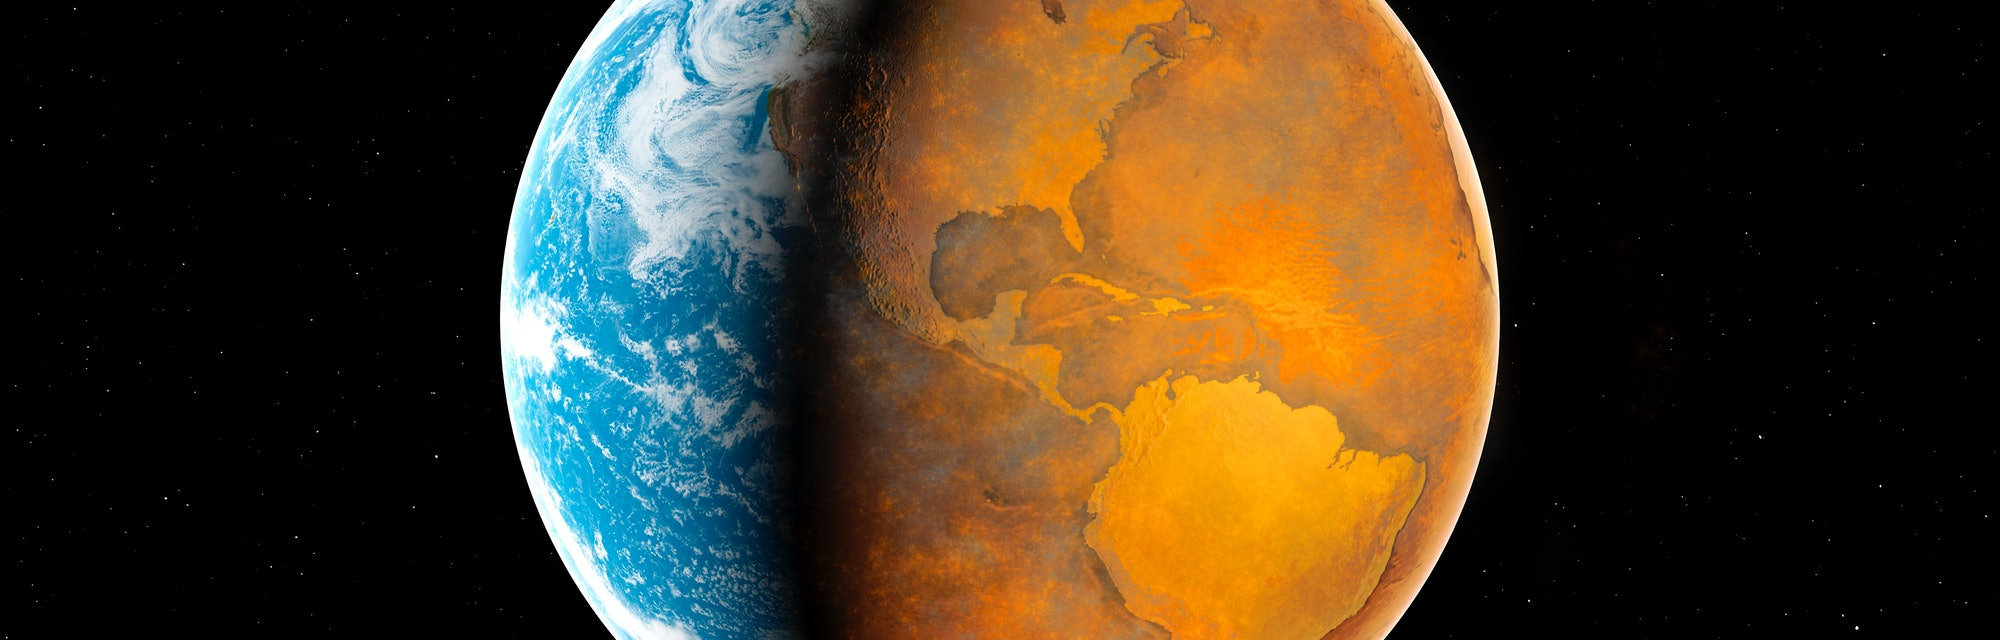 An illustration of Earth divided in half between oceans and an all barren eastern half of the Americ...